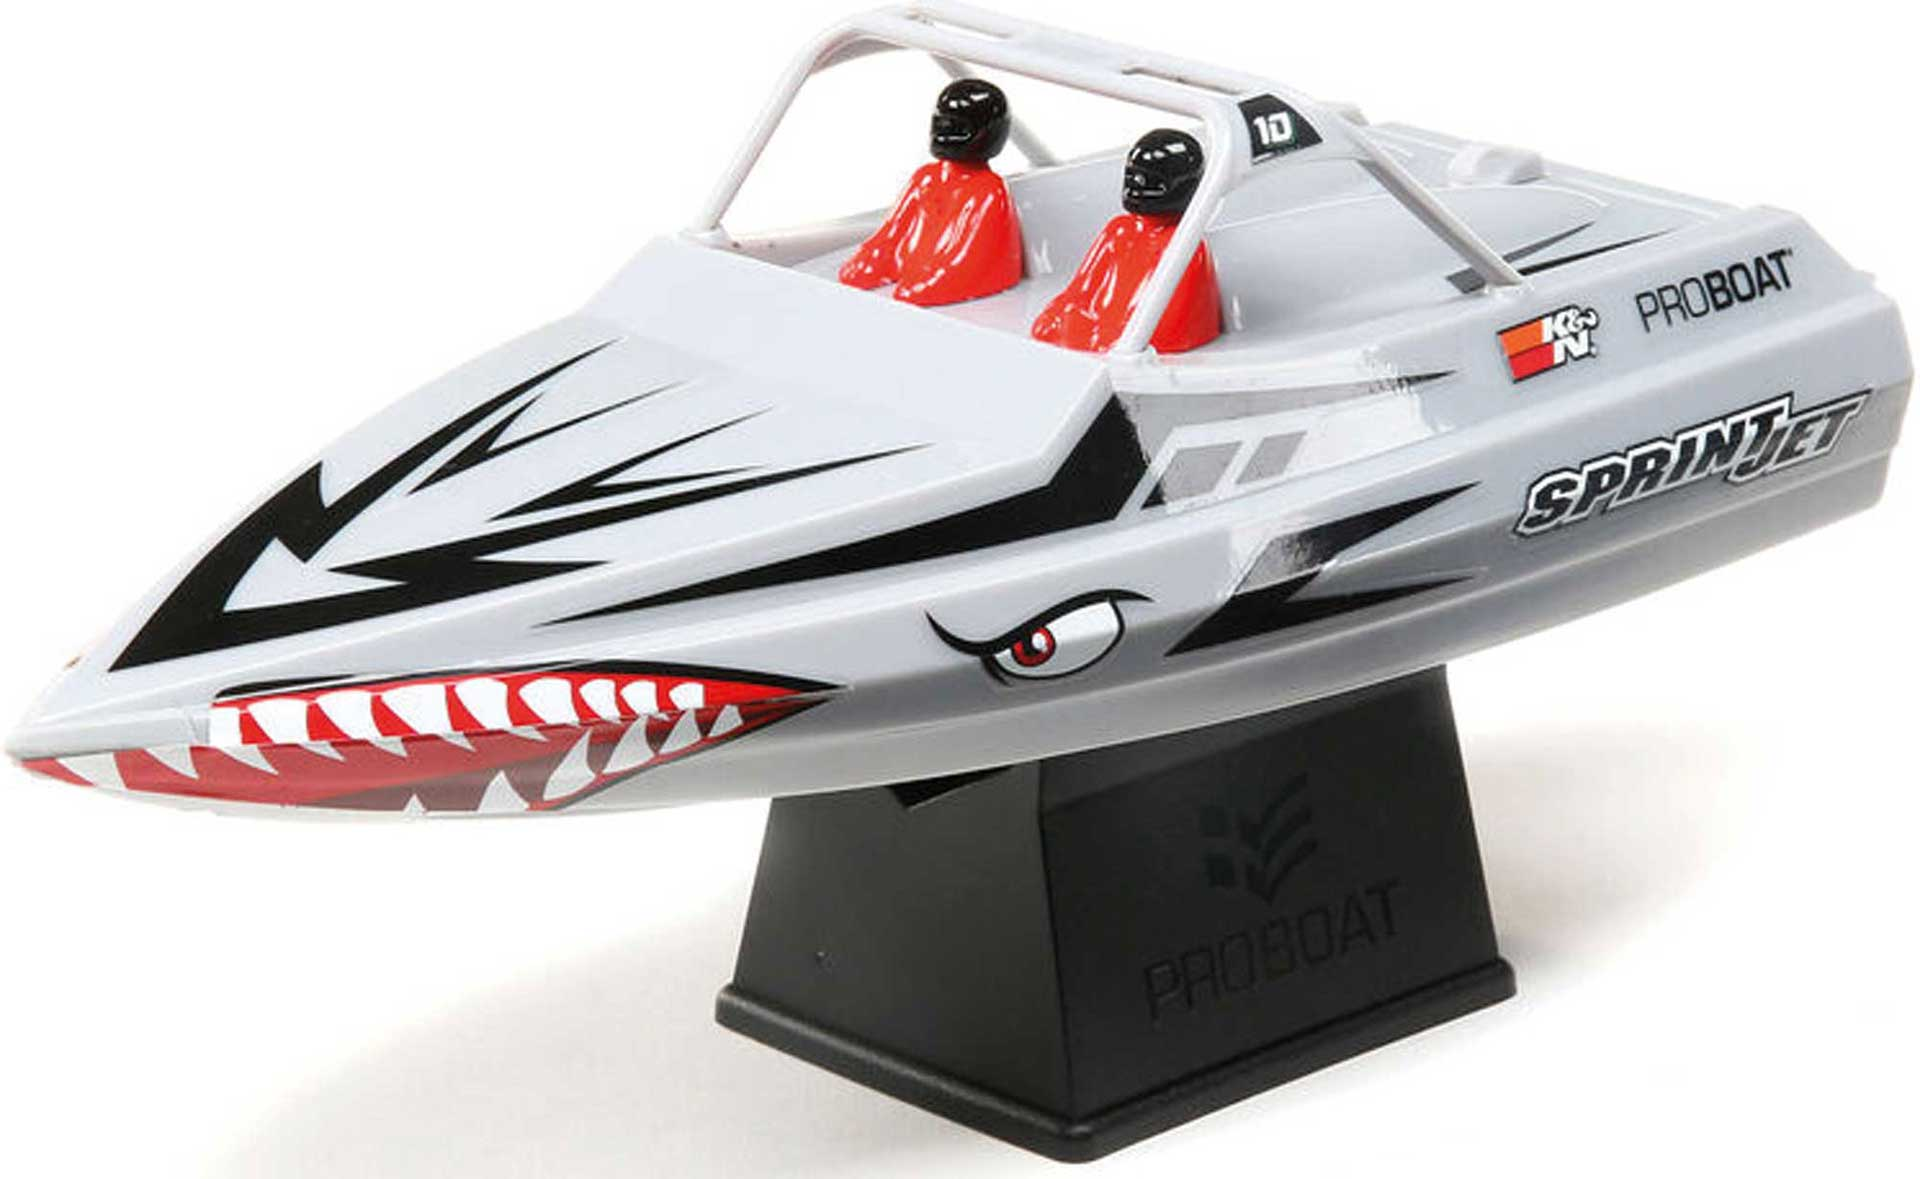 PROBOAT SPRINT JET 9-INCH BOAT RTR SILVER